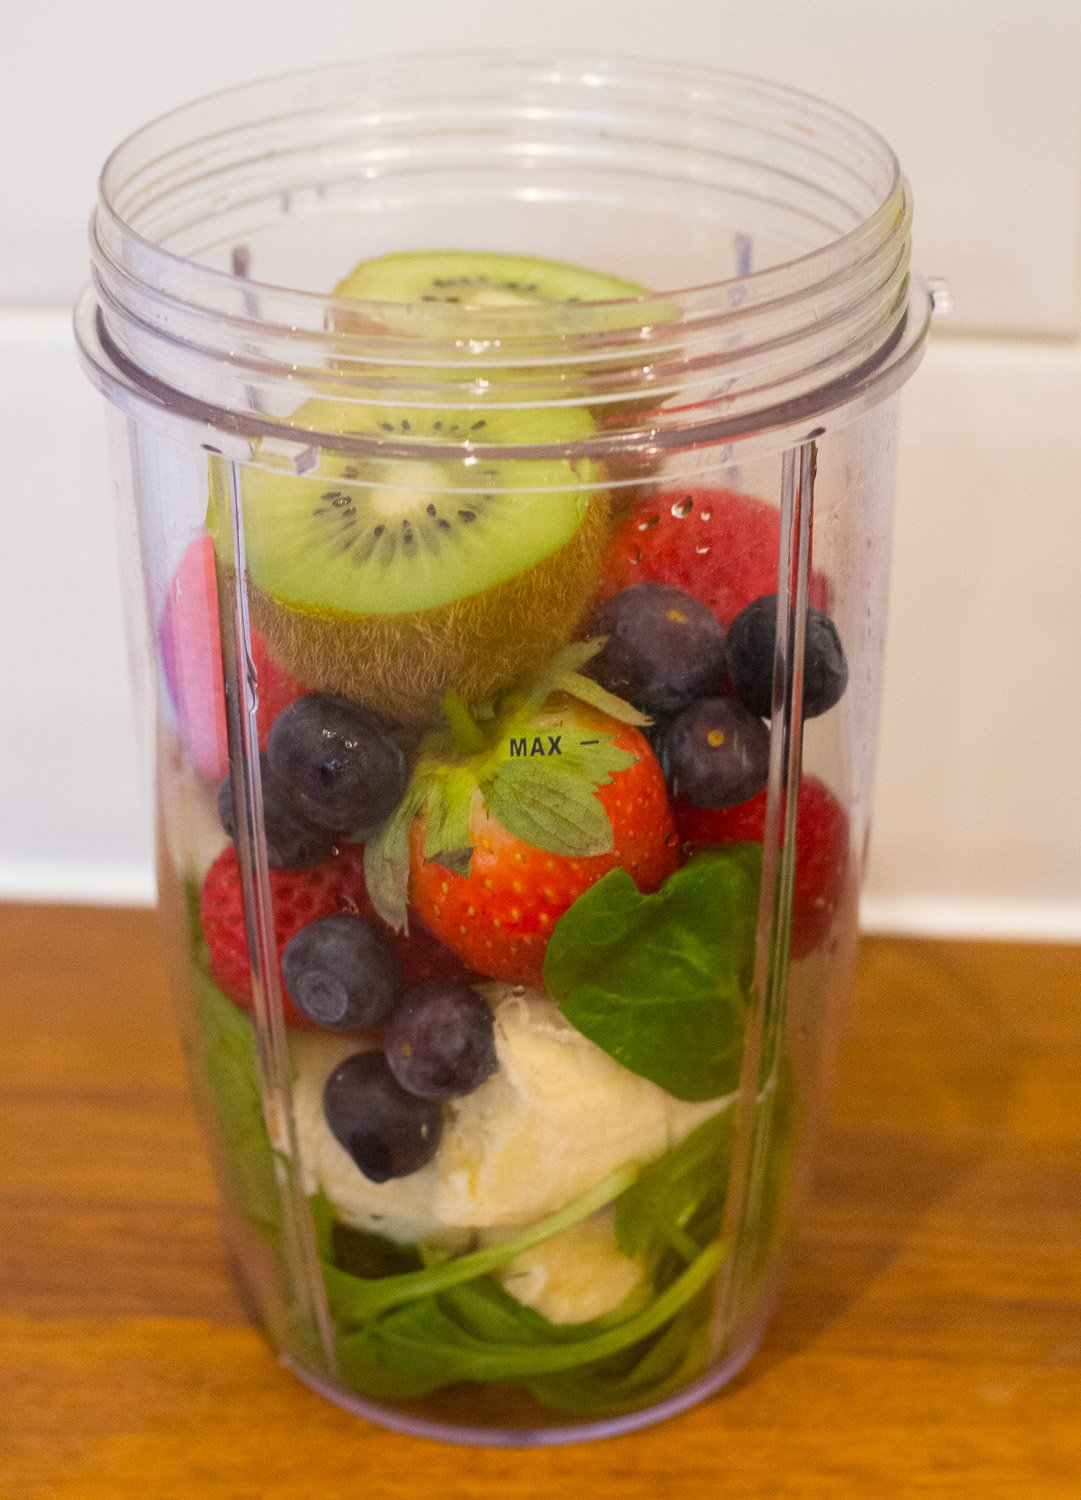 Banana, kiwi fruit, strawberry, blueberry Nutriblast